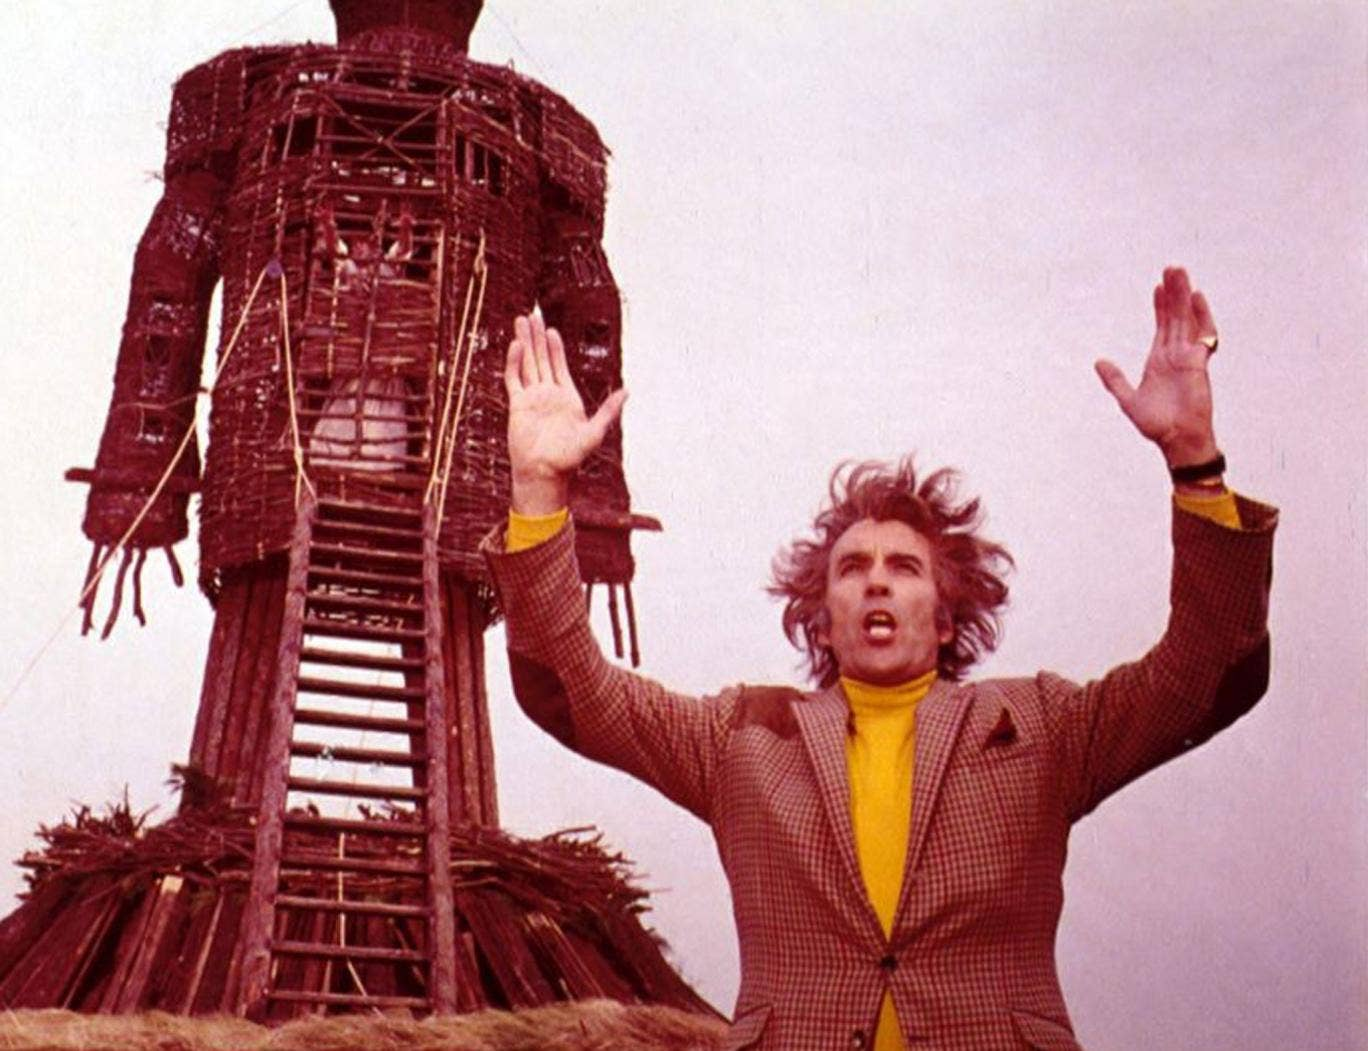 Yet another version of The Wicker Man is on release